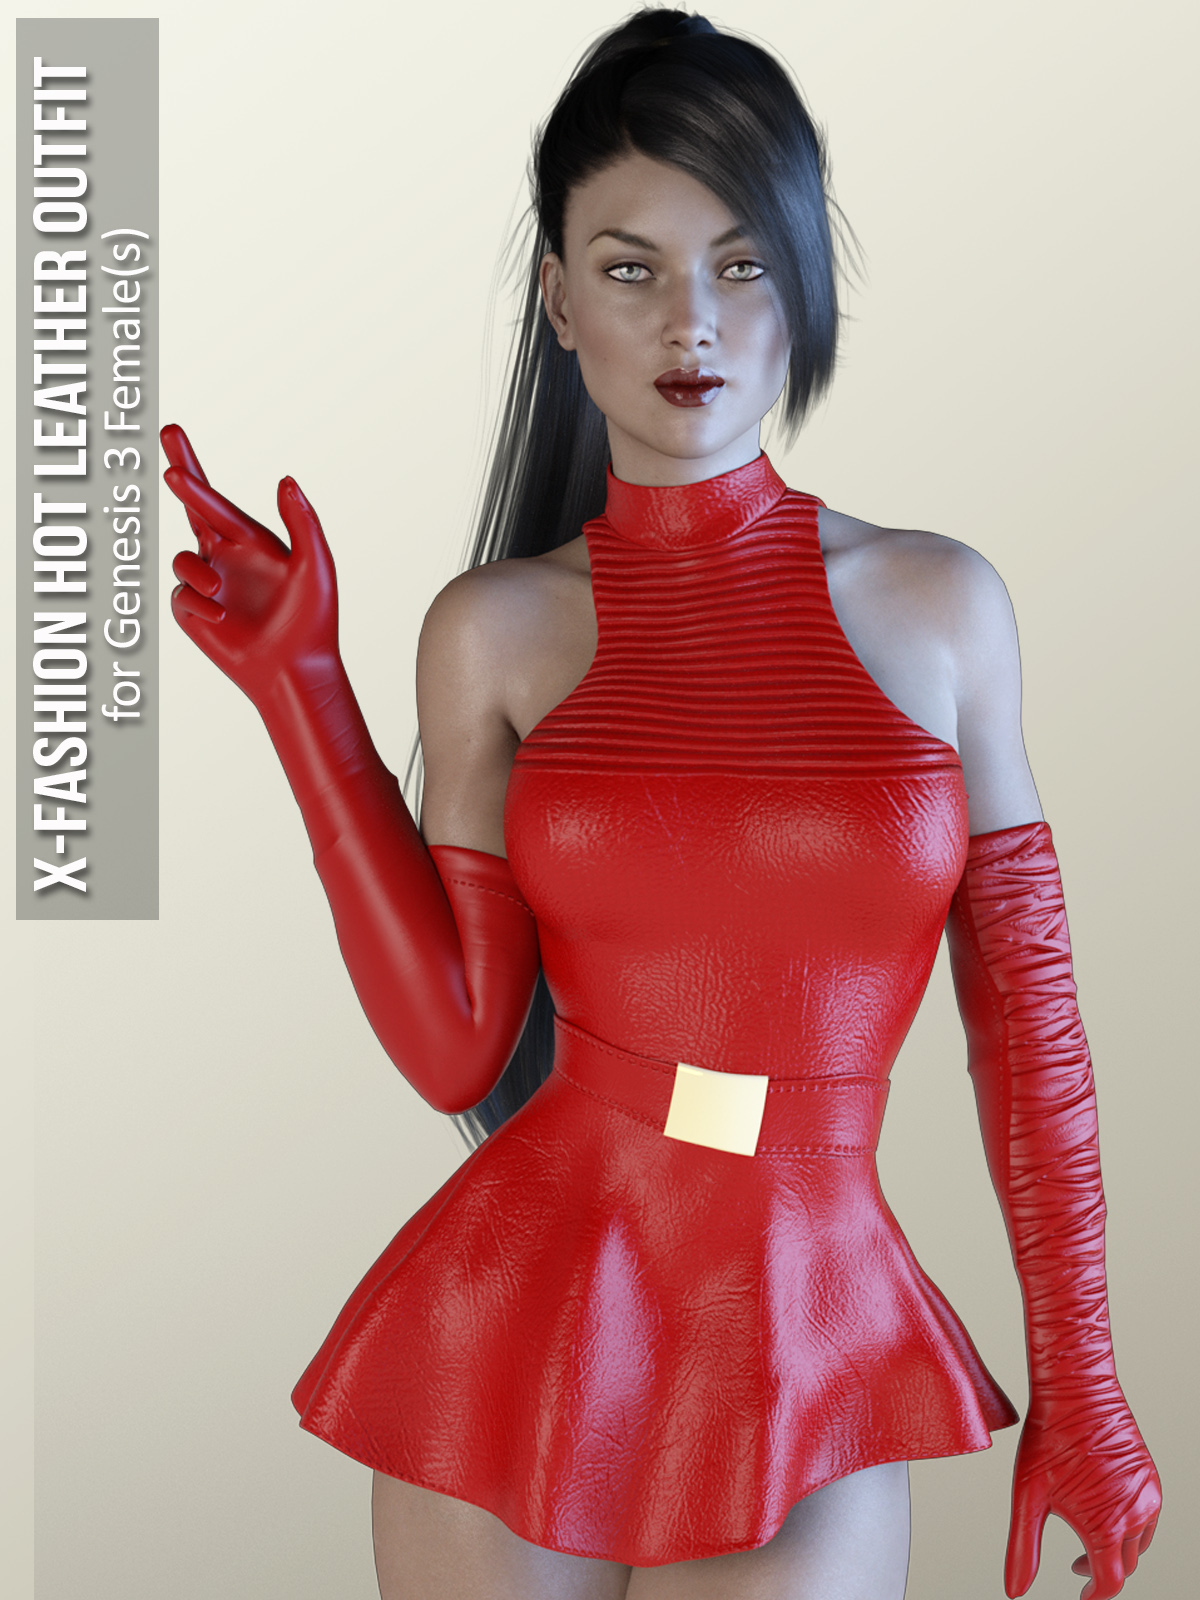 X-Fashion Hot Leather Outfit for Genesis 3 Females by xtrart-3d